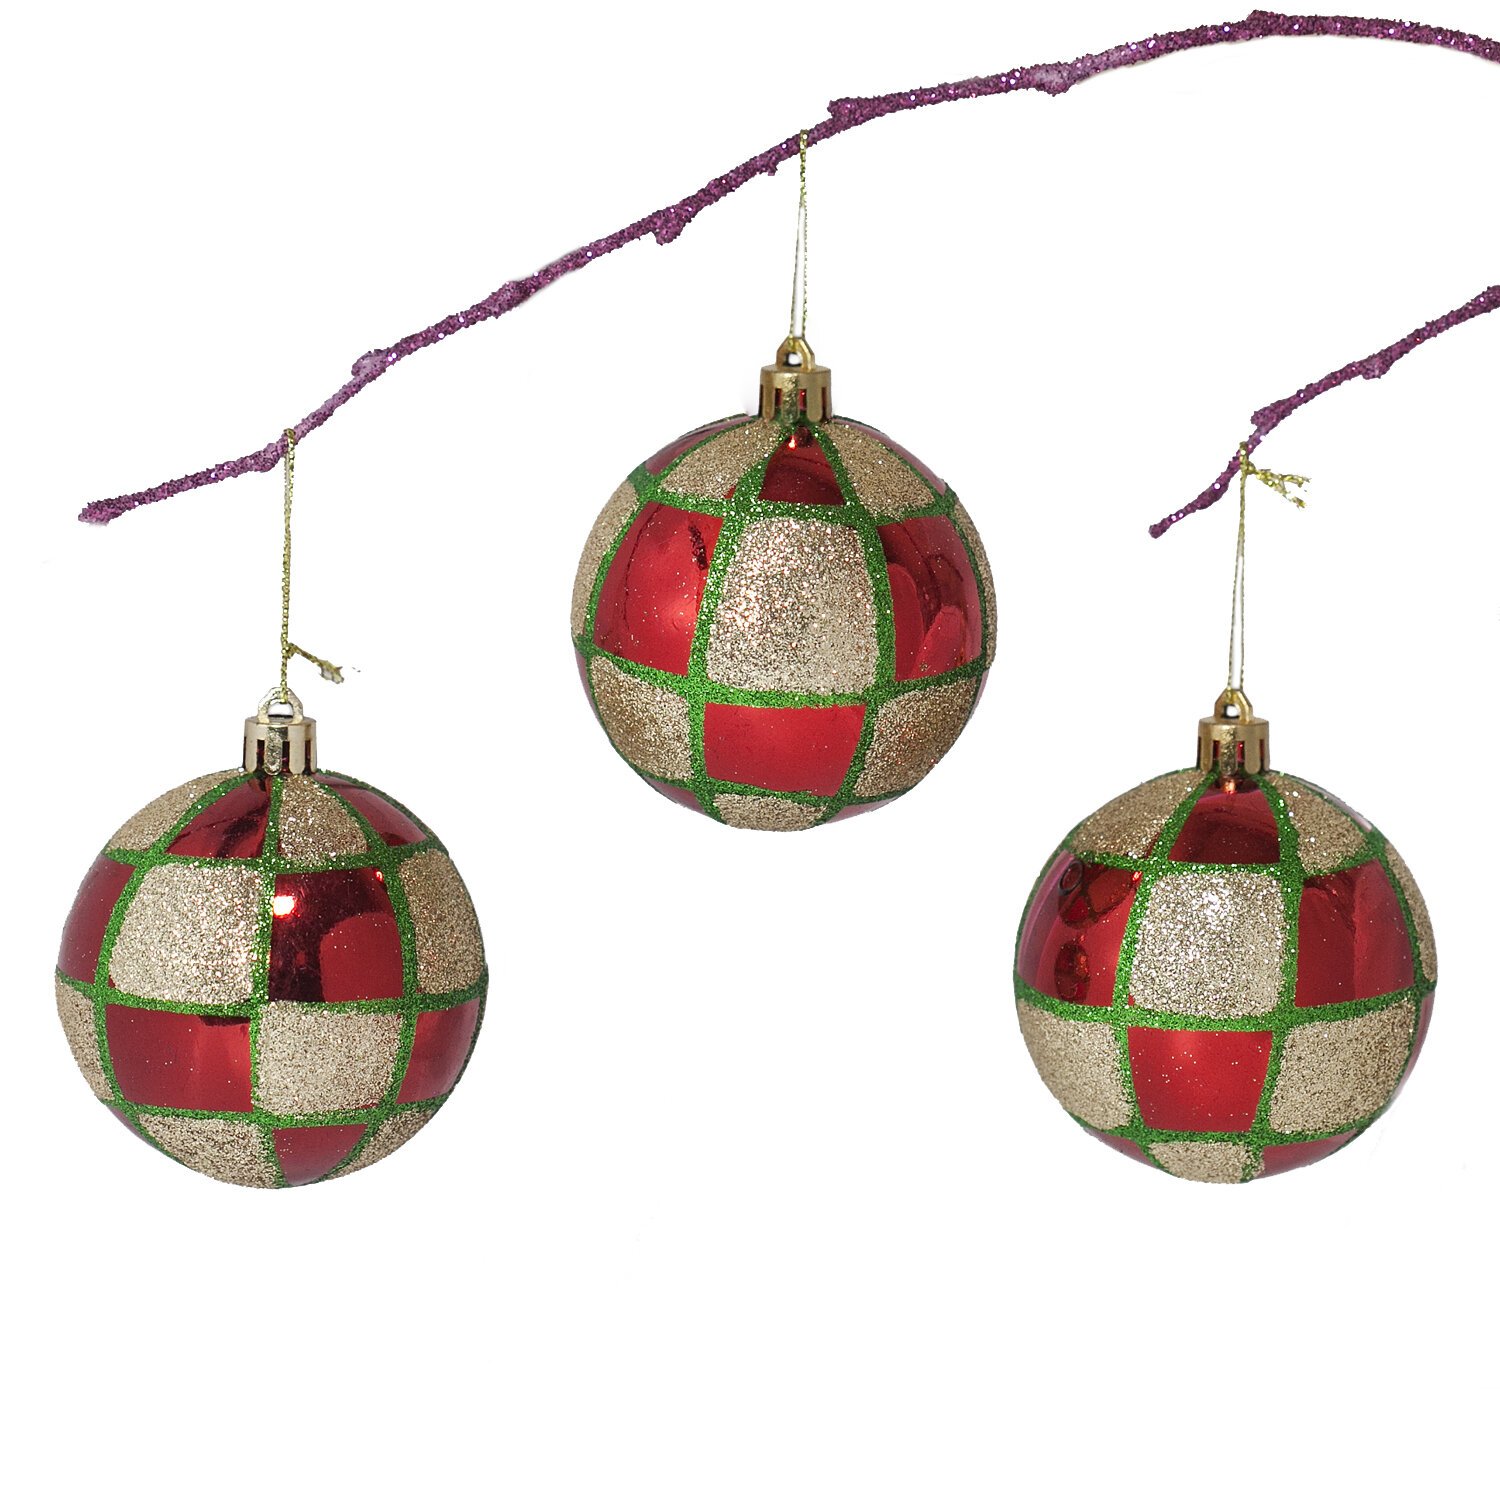 Large Outdoor Christmas Ball Ornaments You Ll Love In 2021 Wayfair